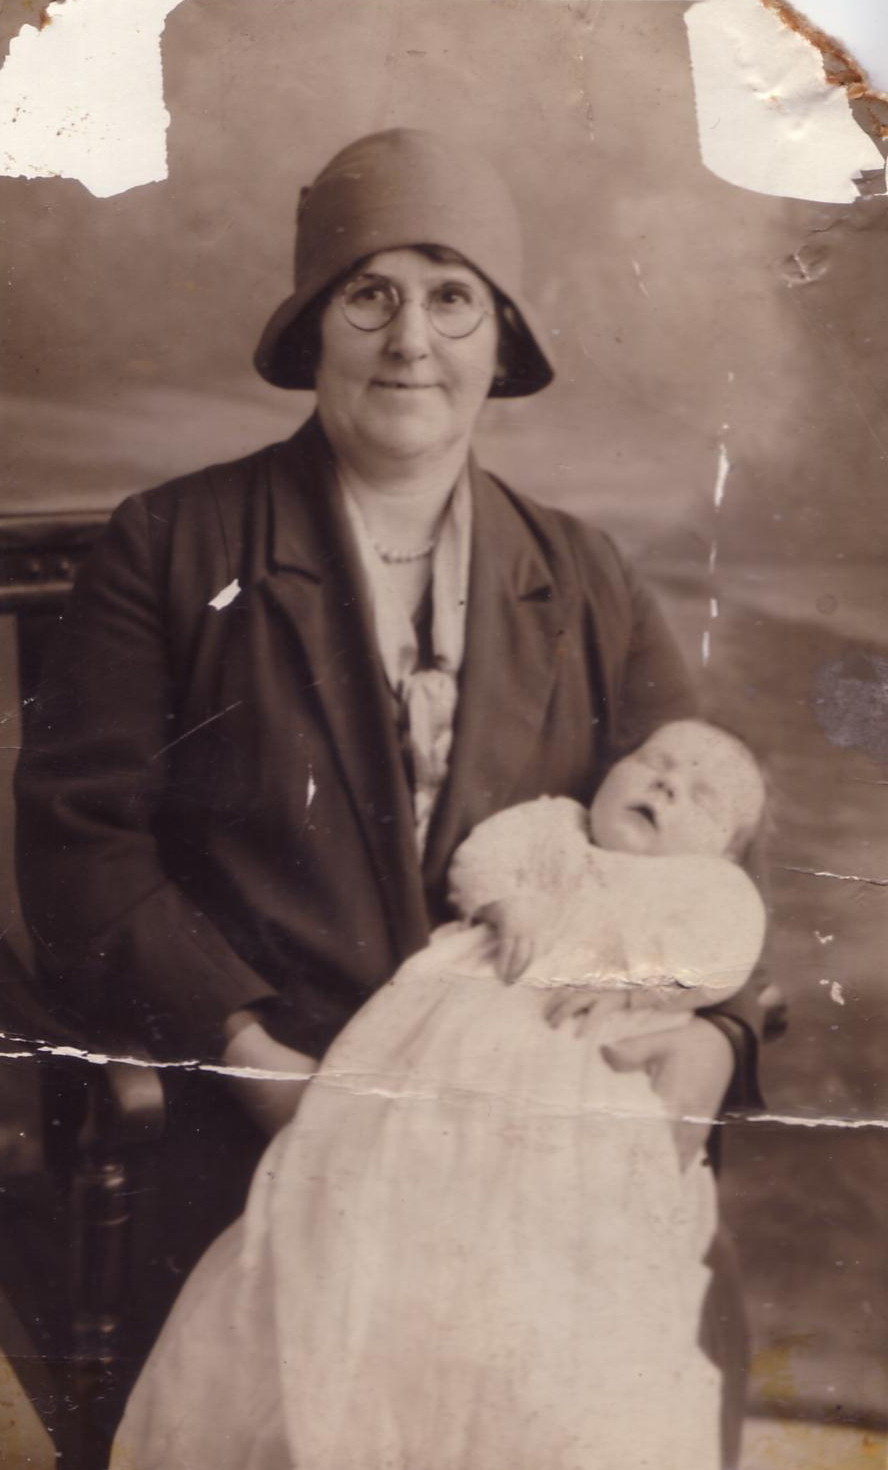 Studio Portrait Woman With Baby In Christening Gown 1930s